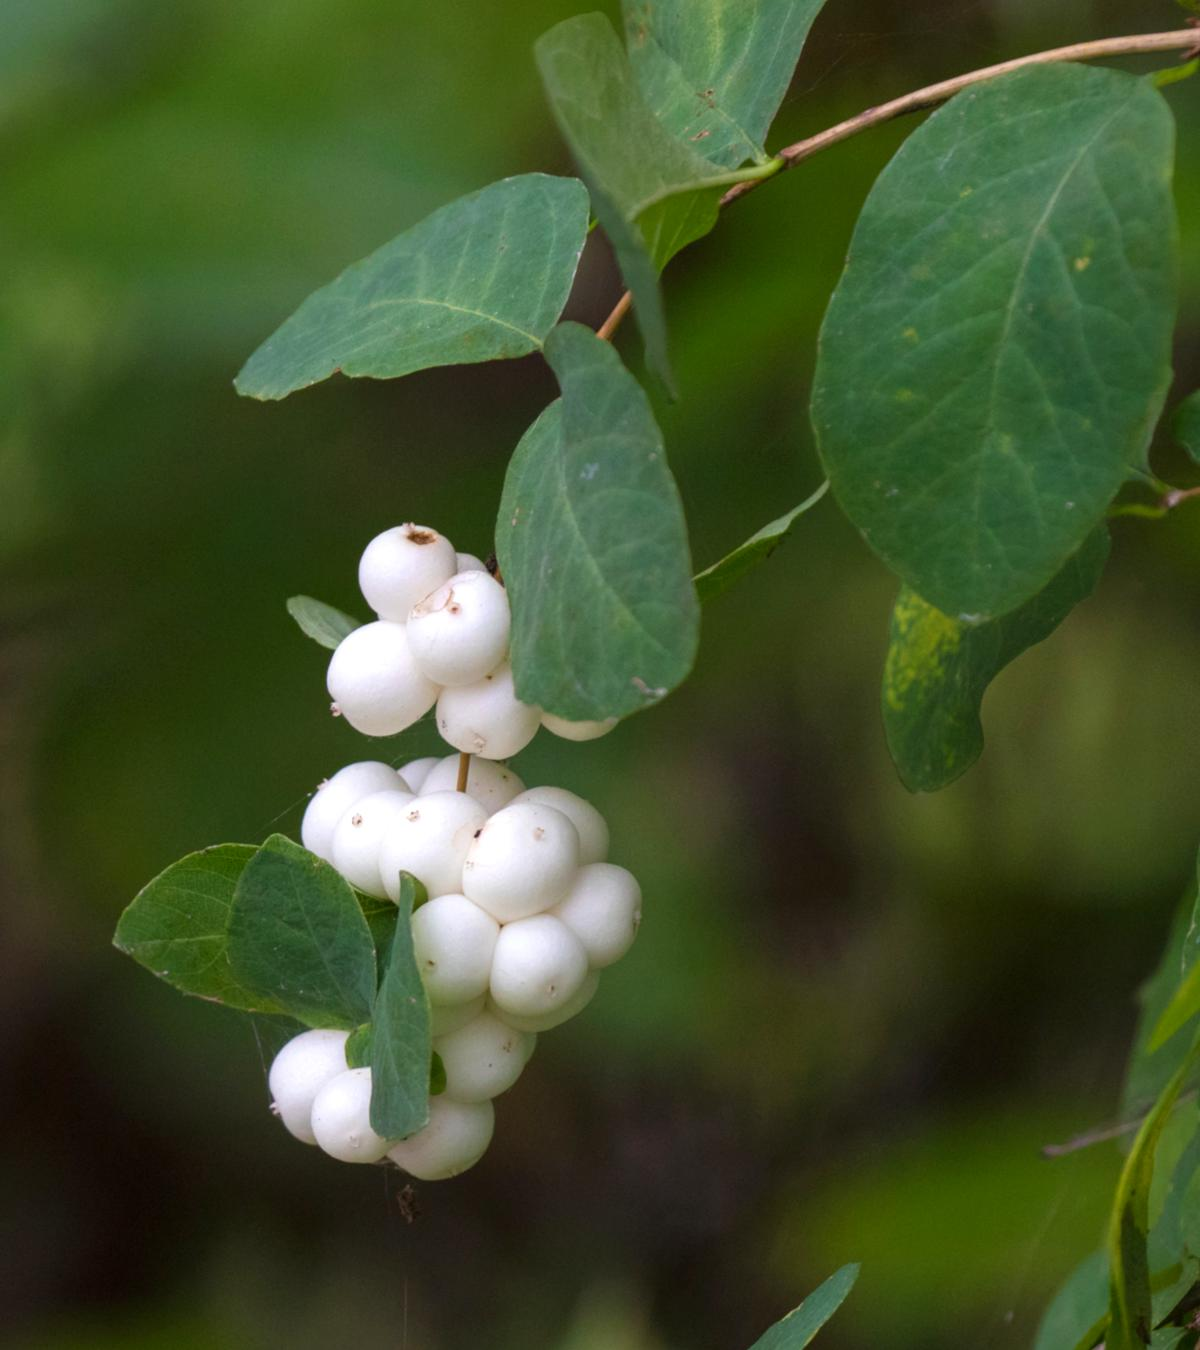 Snowberry pearls with a few leaves on a twig.